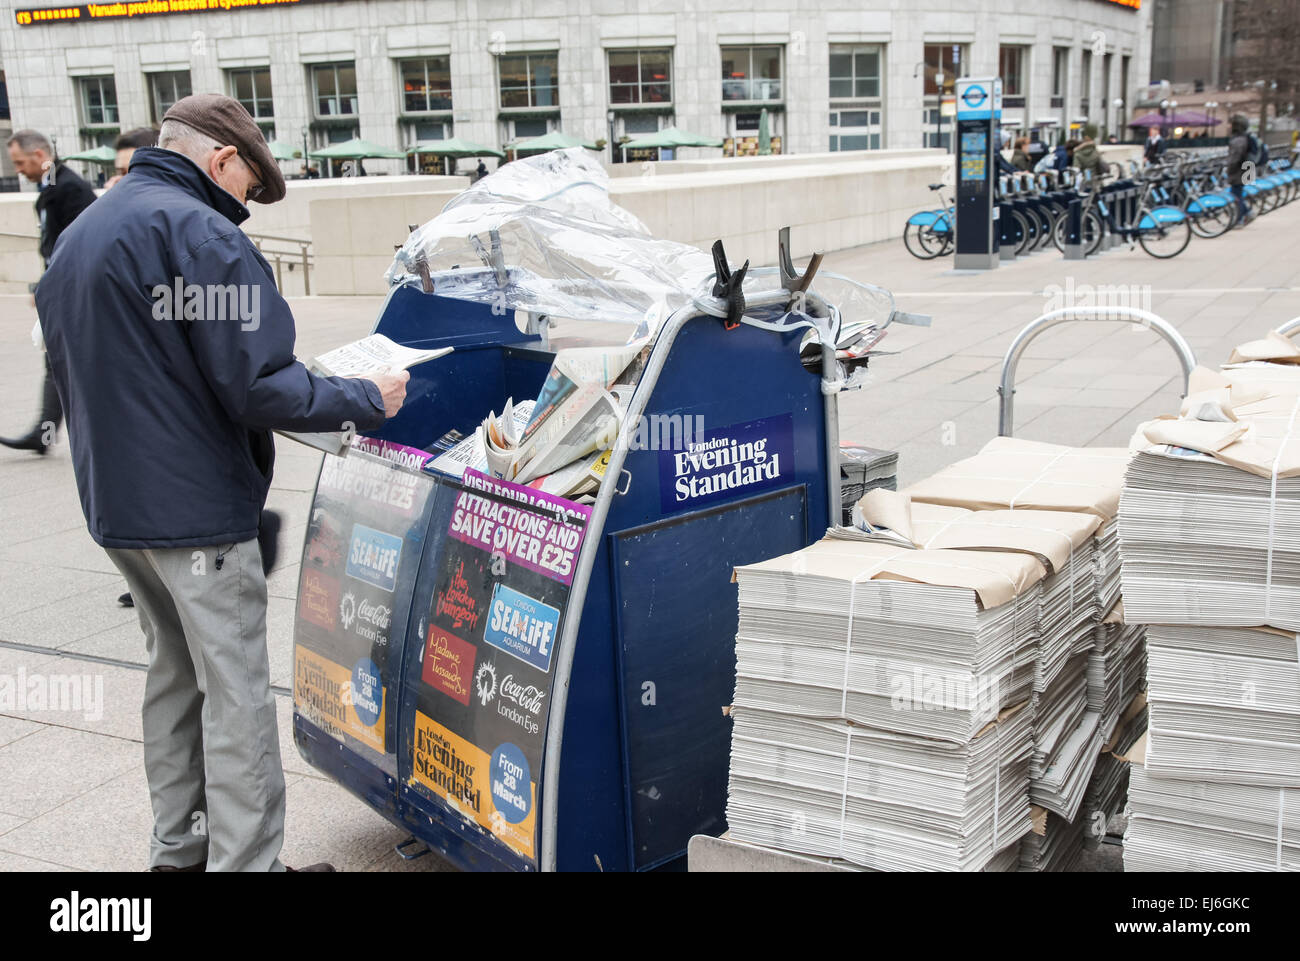 Evening Standard newspaper stand at Canary Wharf, London ...